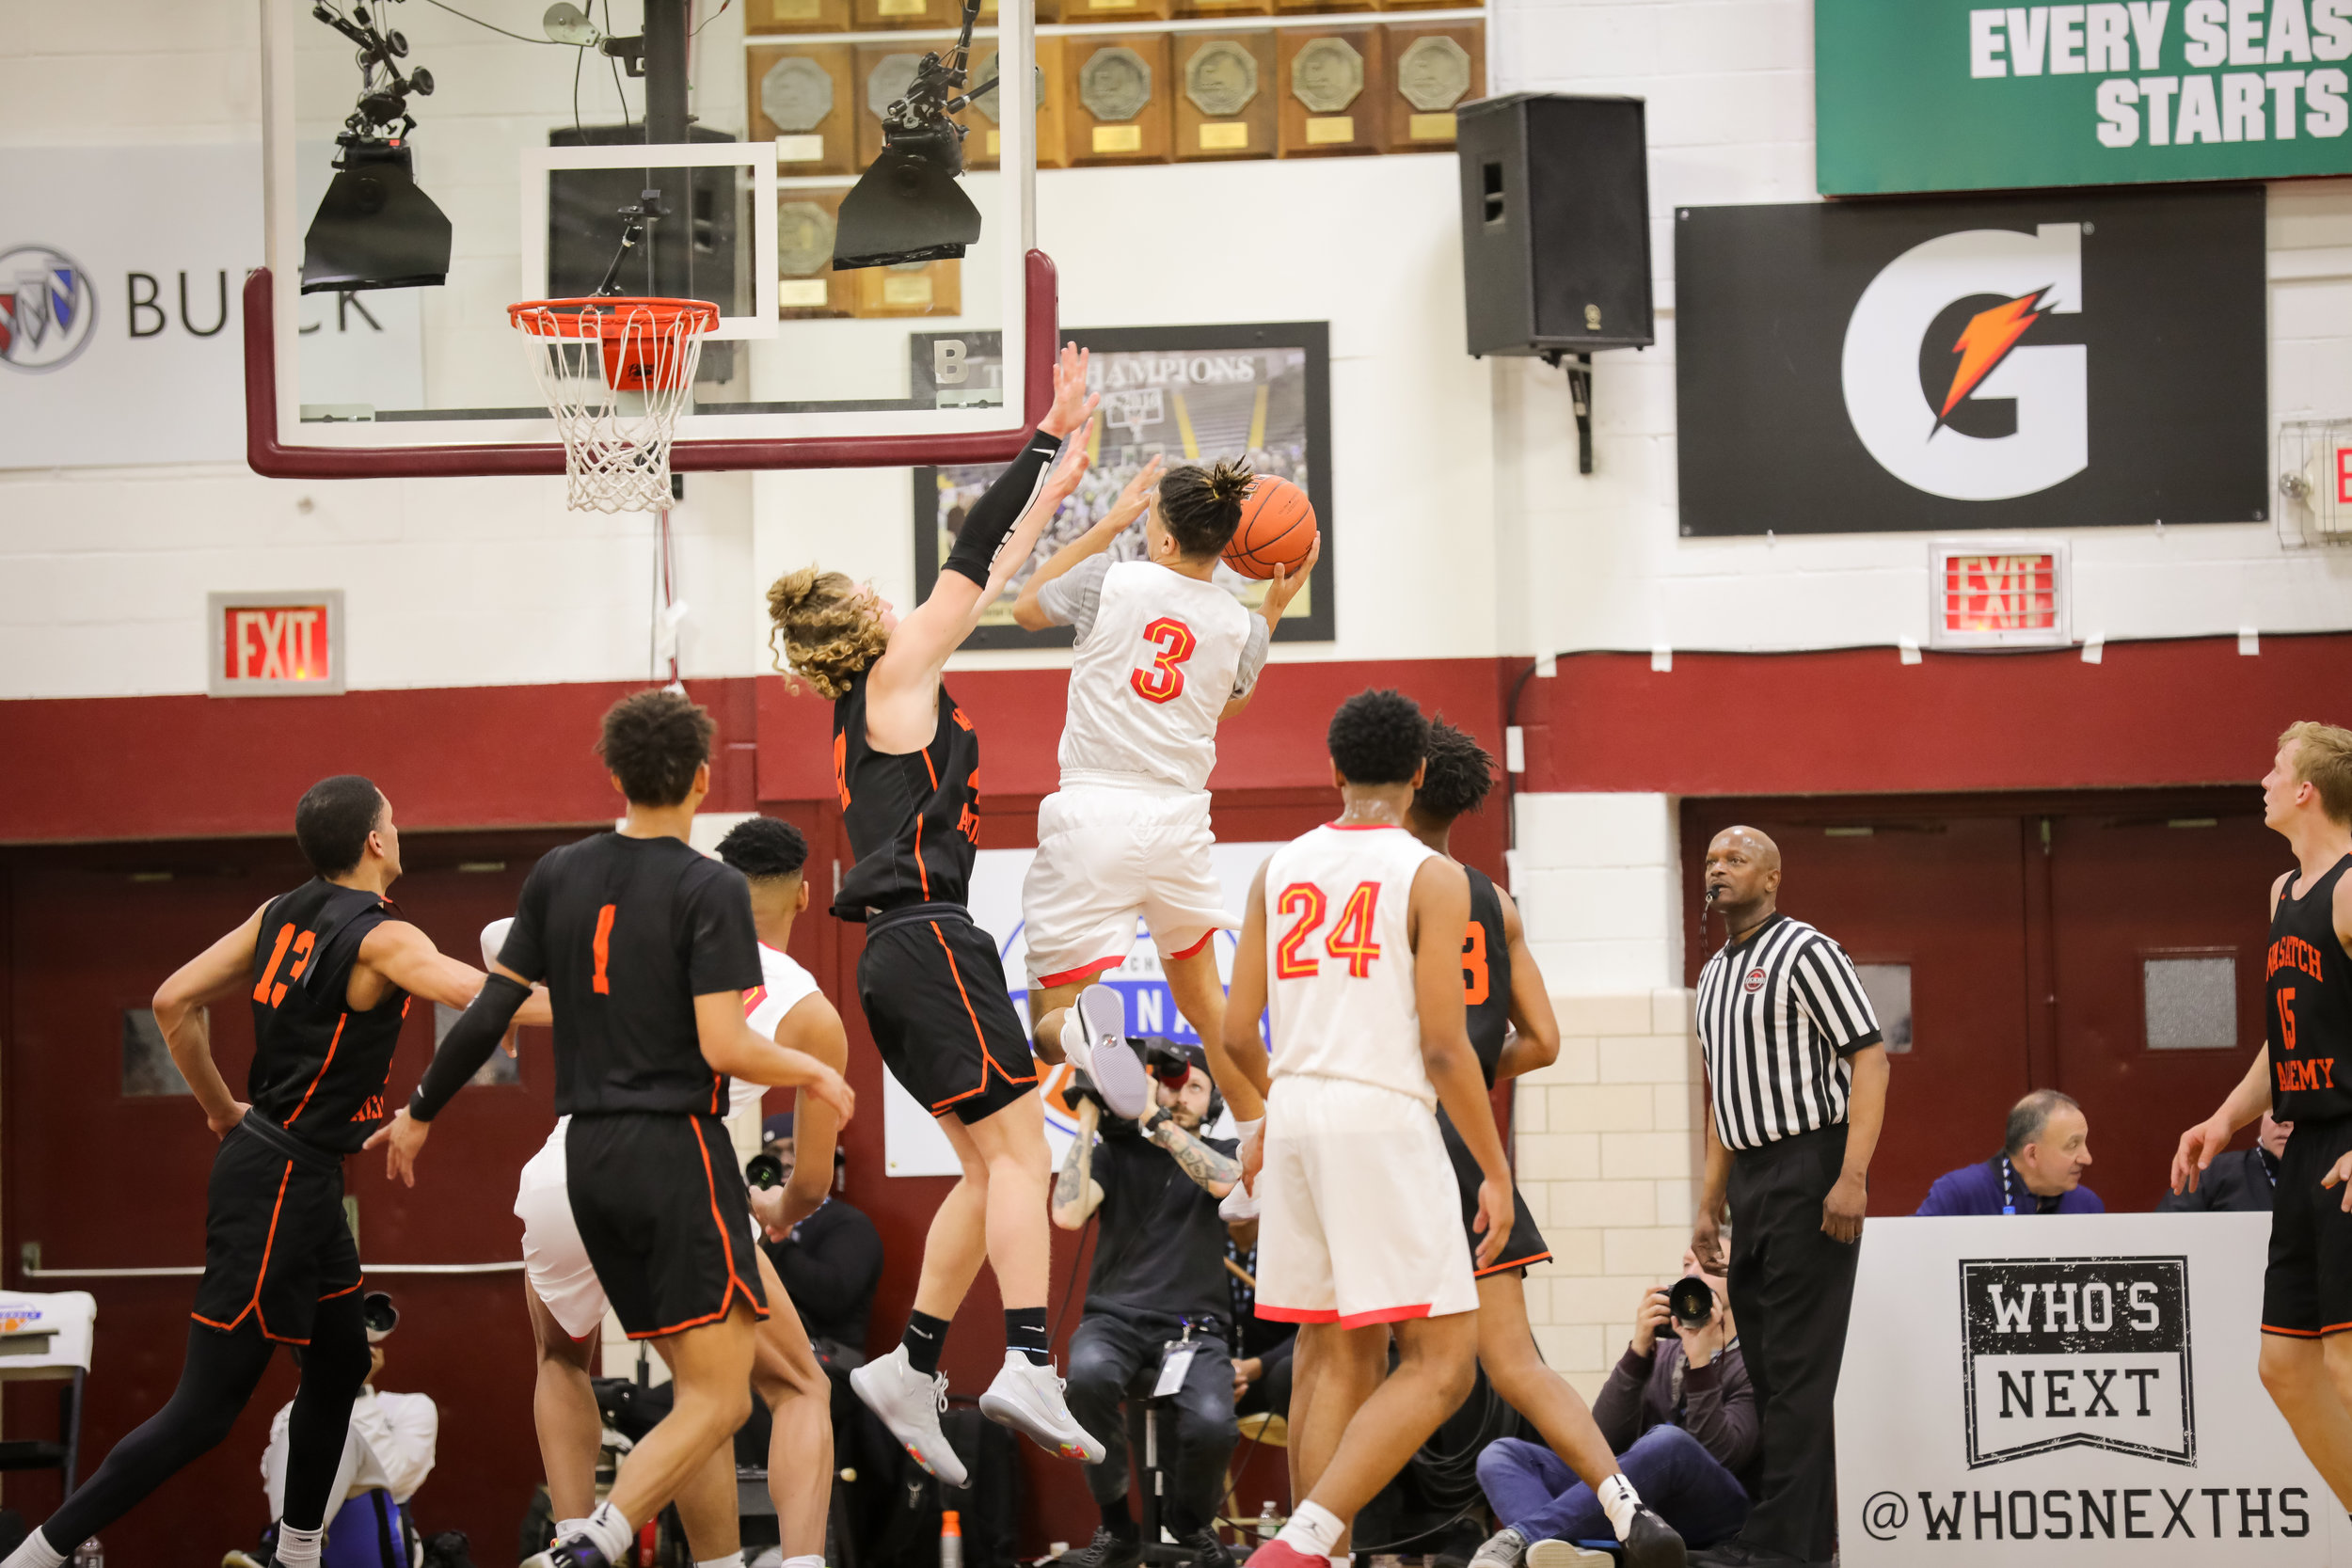 BBall_Geico_Nationals_2019 (37 of 59).jpg